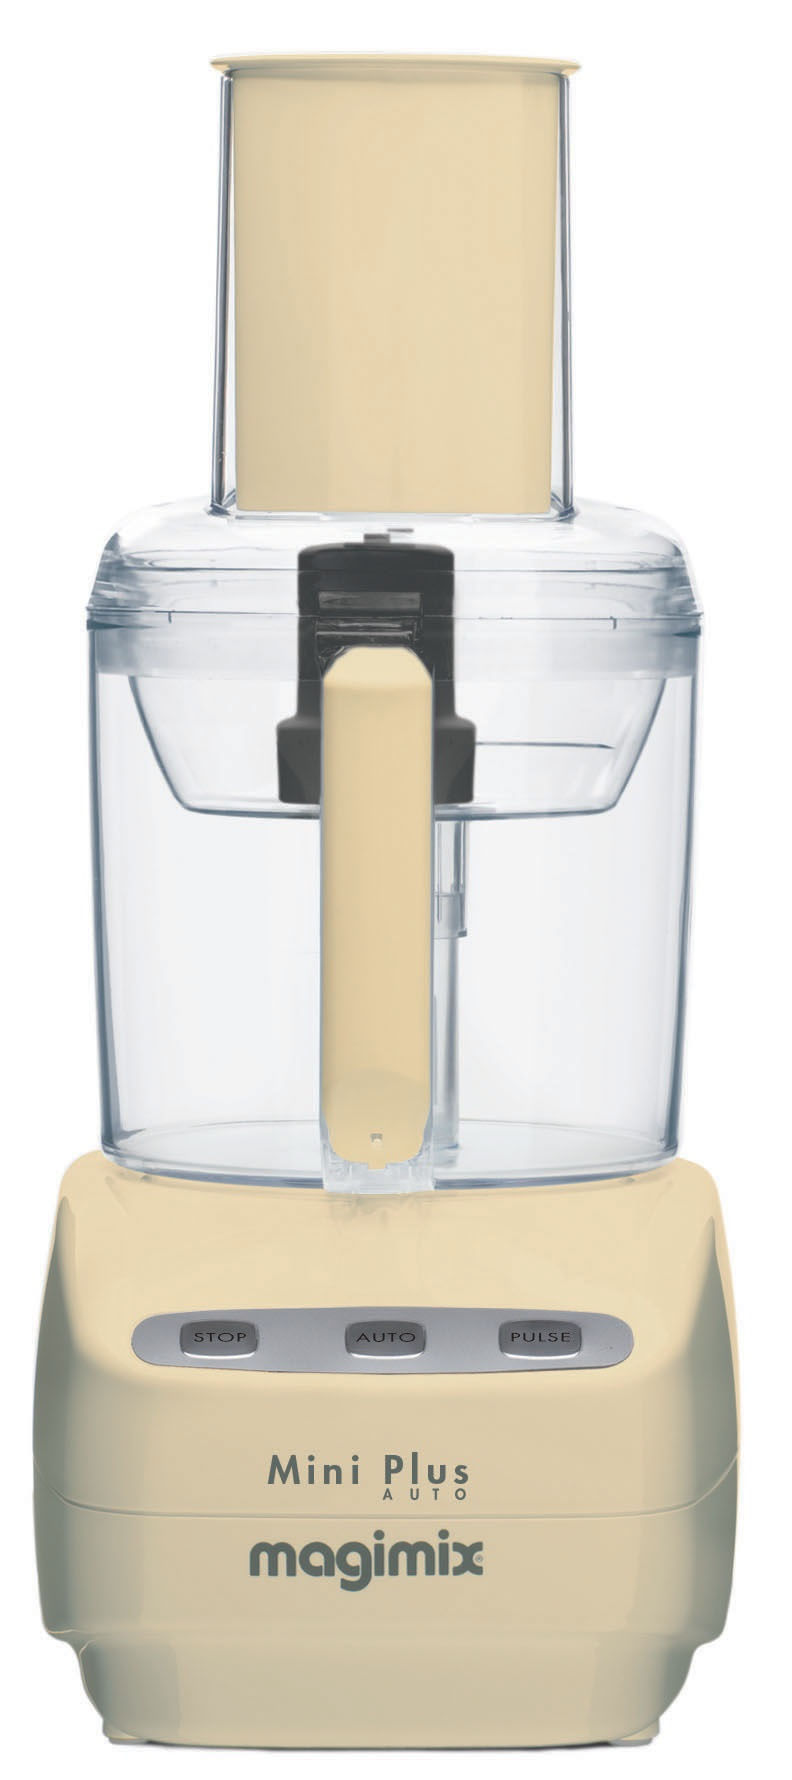 Magimix foodprocessor Mini Plus 18251EB (ivoor)